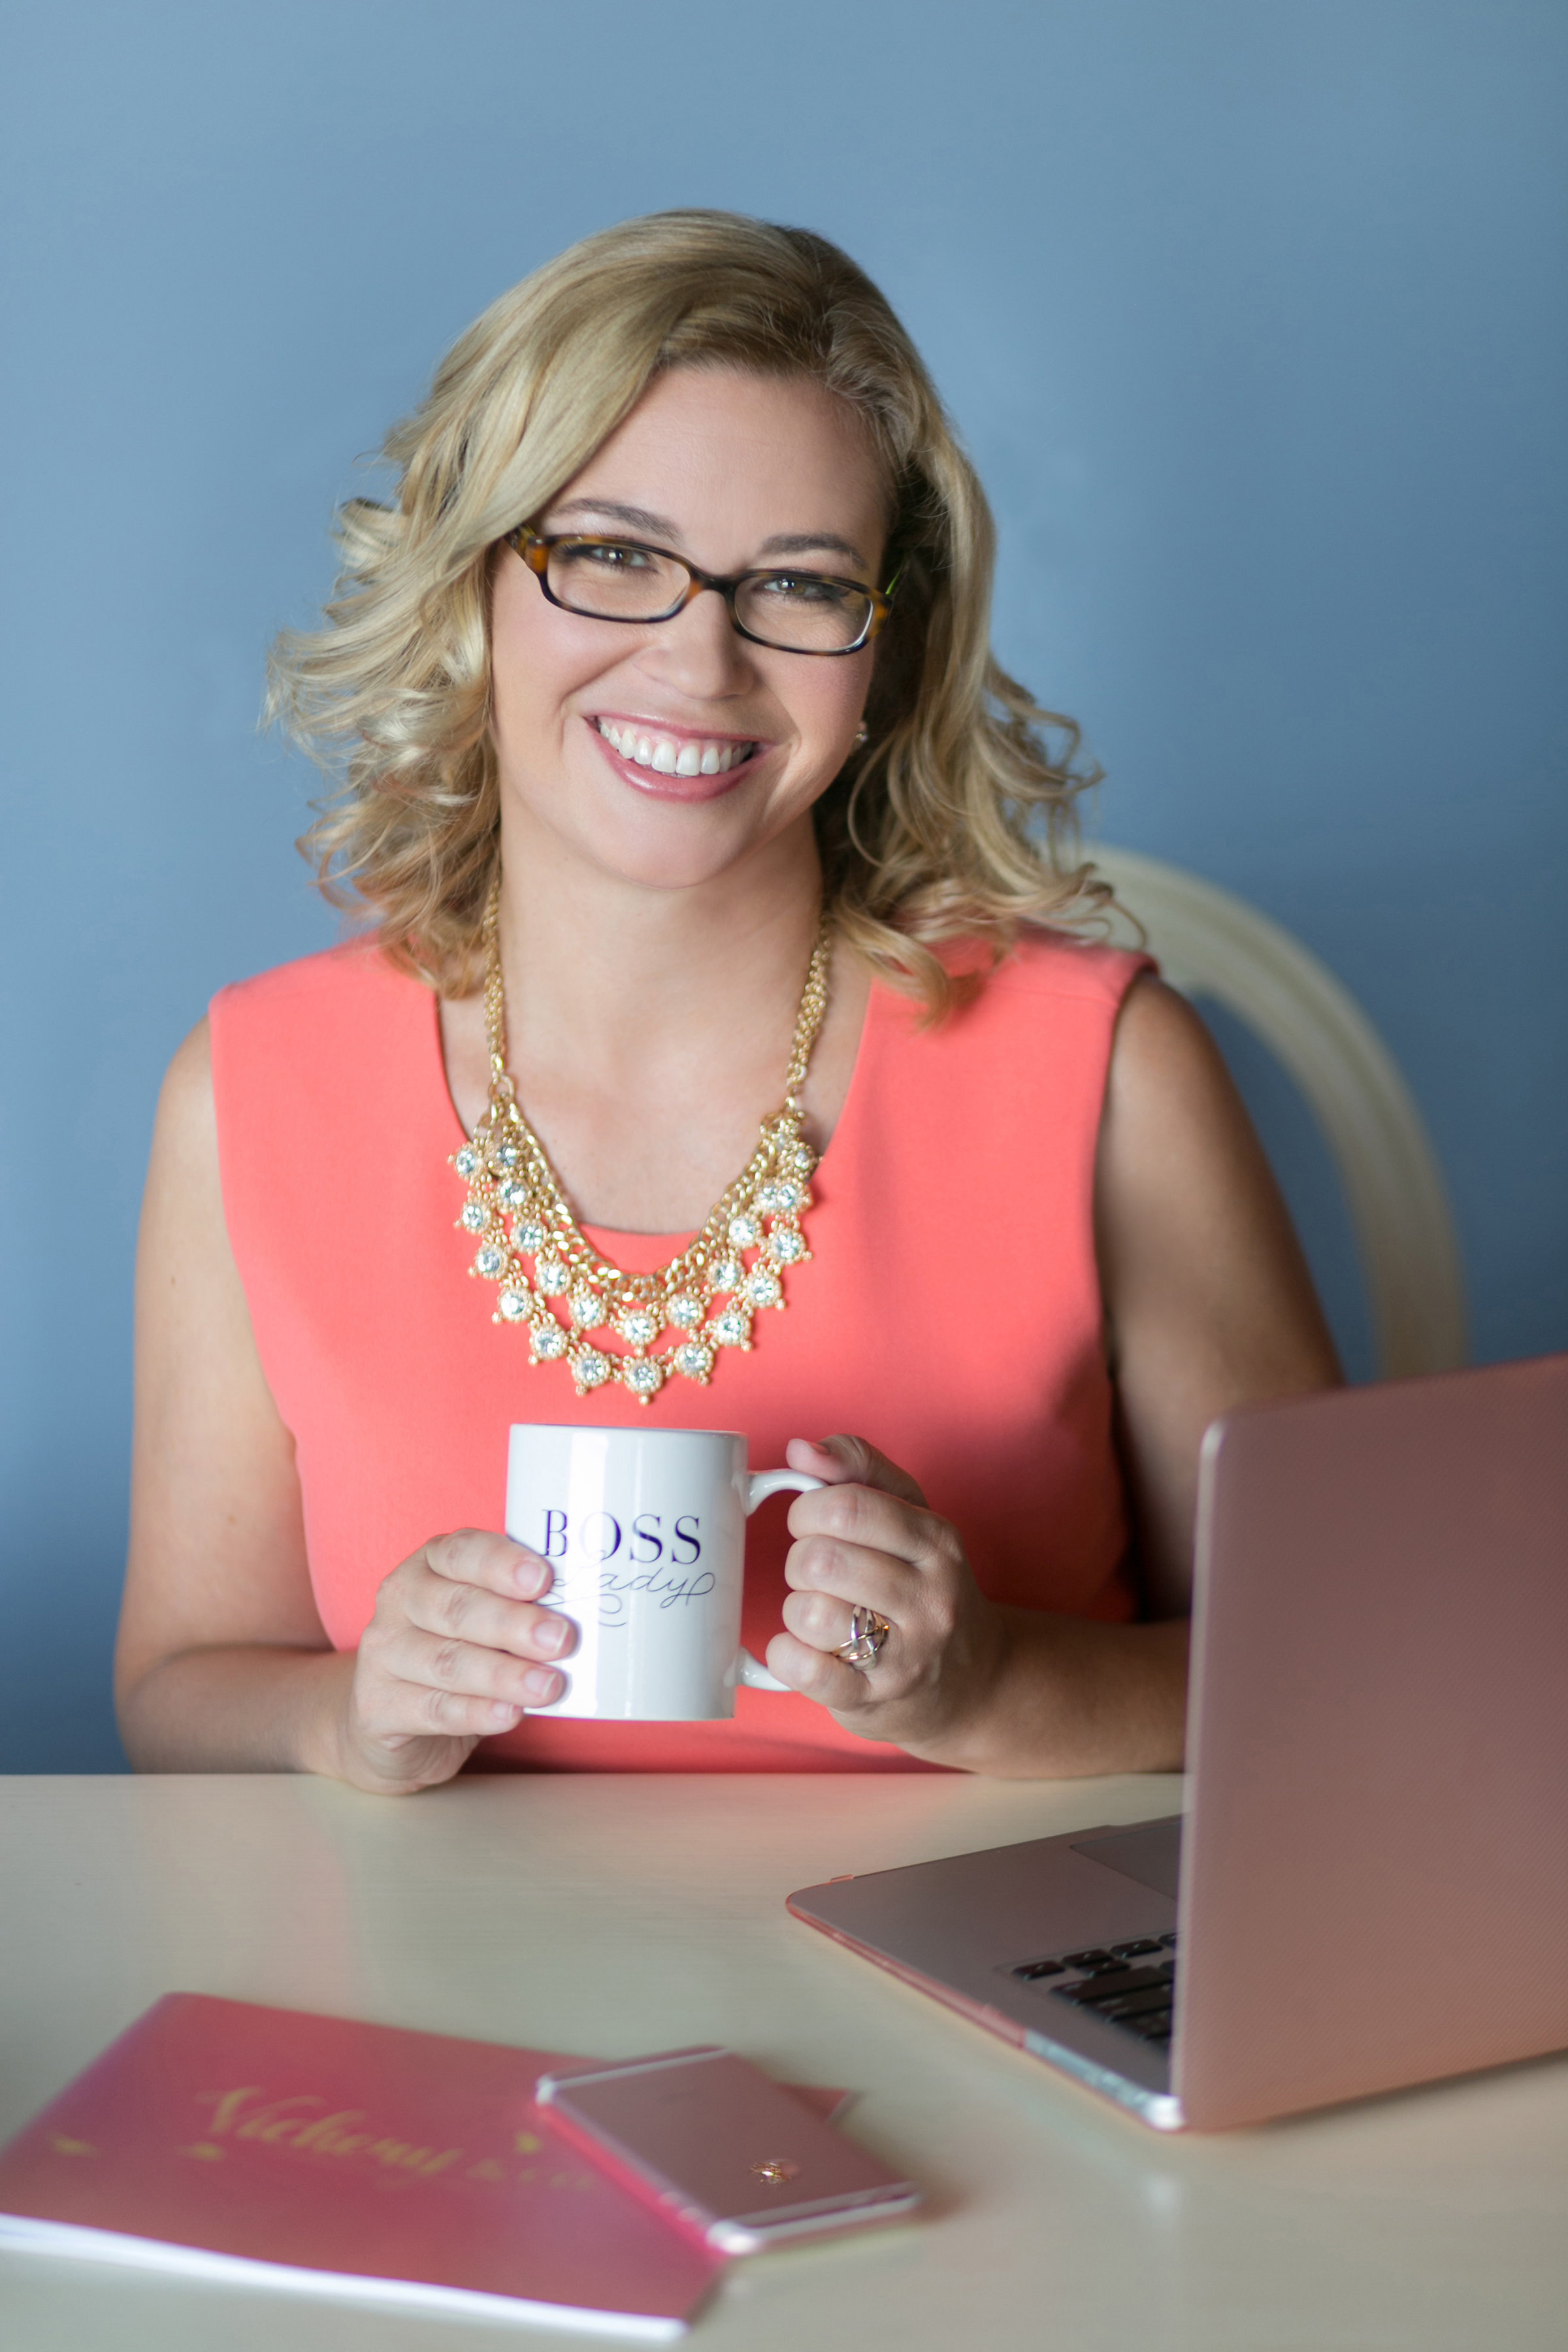 success-coaching-transition-life-coach-heather-vickery-chicago-speaker-007